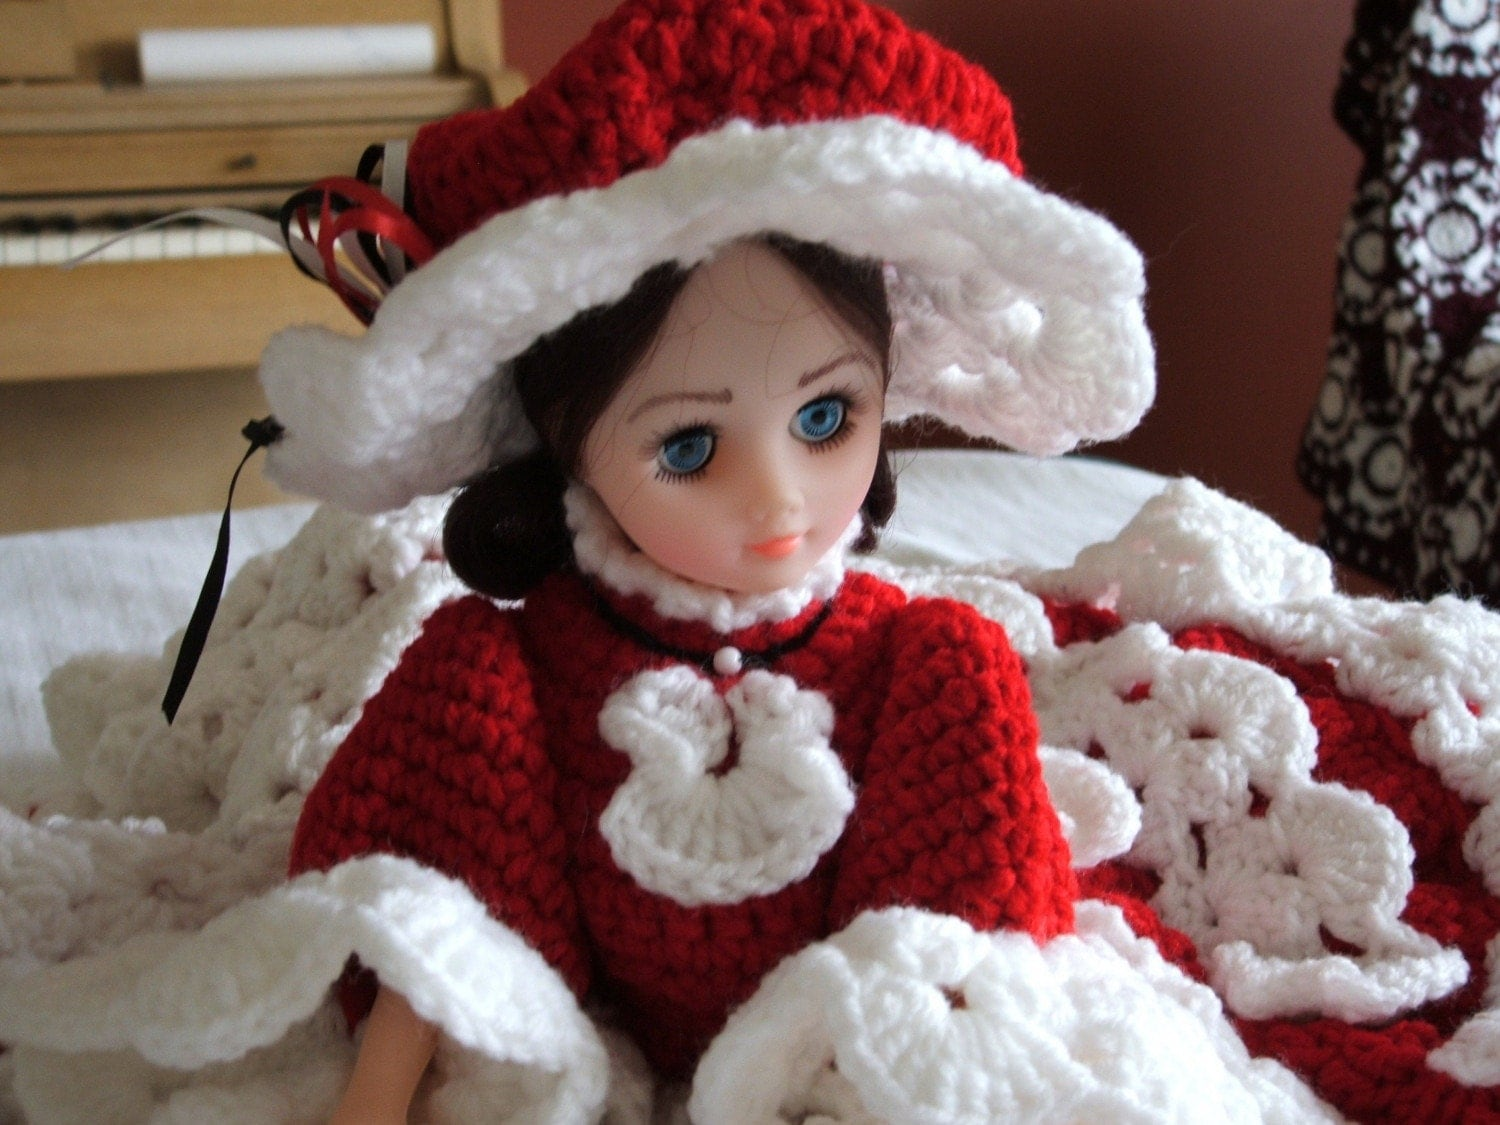 or bridal dresses crocheted bed dolls and pillow dolls add a kitschy ...